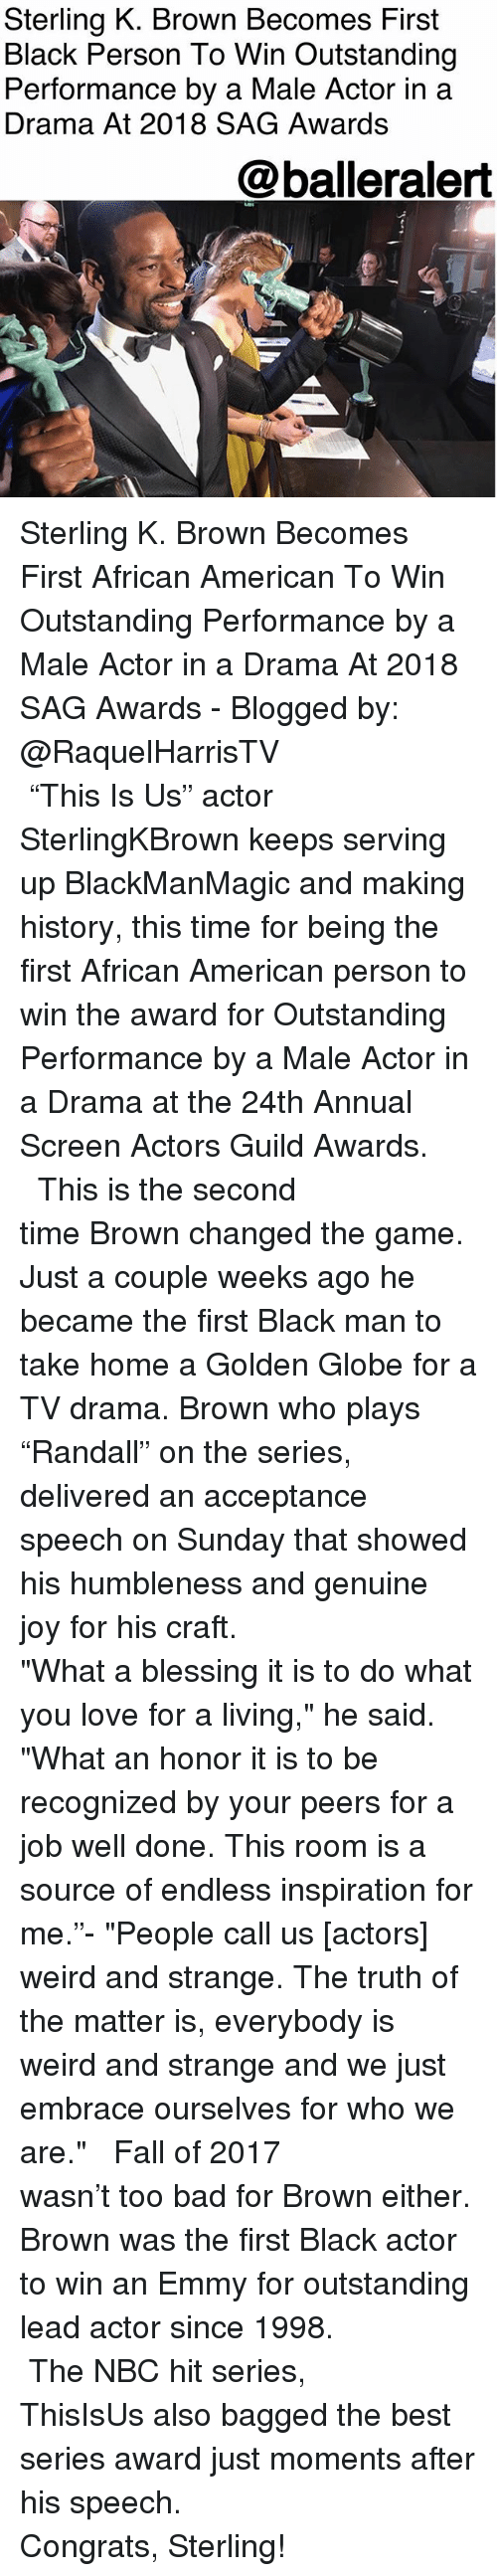 """Bad, Fall, and Love: Sterling K. Brown Becomes First  Black Person To Win Outstanding  Performance by a Male Actor in a  Drama At 2018 SAG Awards  @balleralert  4 Sterling K. Brown Becomes First African American To Win Outstanding Performance by a Male Actor in a Drama At 2018 SAG Awards - Blogged by: @RaquelHarrisTV⠀⠀⠀⠀⠀⠀⠀⠀⠀ ⠀⠀⠀⠀⠀⠀⠀ ⠀⠀⠀⠀⠀⠀⠀ """"This Is Us"""" actor SterlingKBrown keeps serving up BlackManMagic and making history, this time for being the first African American person to win the award for Outstanding Performance by a Male Actor in a Drama at the 24th Annual Screen Actors Guild Awards. ⠀⠀⠀⠀⠀⠀⠀⠀⠀ ⠀⠀⠀⠀⠀⠀⠀⠀⠀ This is the second time Brown changed the game. Just a couple weeks ago he became the first Black man to take home a Golden Globe for a TV drama. Brown who plays """"Randall"""" on the series, delivered an acceptance speech on Sunday that showed his humbleness and genuine joy for his craft. ⠀⠀⠀⠀⠀⠀⠀⠀⠀ ⠀⠀⠀⠀⠀⠀⠀⠀⠀ """"What a blessing it is to do what you love for a living,"""" he said. """"What an honor it is to be recognized by your peers for a job well done. This room is a source of endless inspiration for me.""""- """"People call us [actors] weird and strange. The truth of the matter is, everybody is weird and strange and we just embrace ourselves for who we are."""" ⠀⠀⠀⠀⠀⠀⠀⠀⠀ ⠀⠀⠀⠀⠀⠀⠀⠀⠀ Fall of 2017 wasn't too bad for Brown either. Brown was the first Black actor to win an Emmy for outstanding lead actor since 1998. ⠀⠀⠀⠀⠀⠀⠀⠀⠀ ⠀⠀⠀⠀⠀⠀⠀⠀⠀ The NBC hit series, ThisIsUs also bagged the best series award just moments after his speech. ⠀⠀⠀⠀⠀⠀⠀⠀⠀ ⠀⠀⠀⠀⠀⠀⠀⠀⠀ Congrats, Sterling!"""